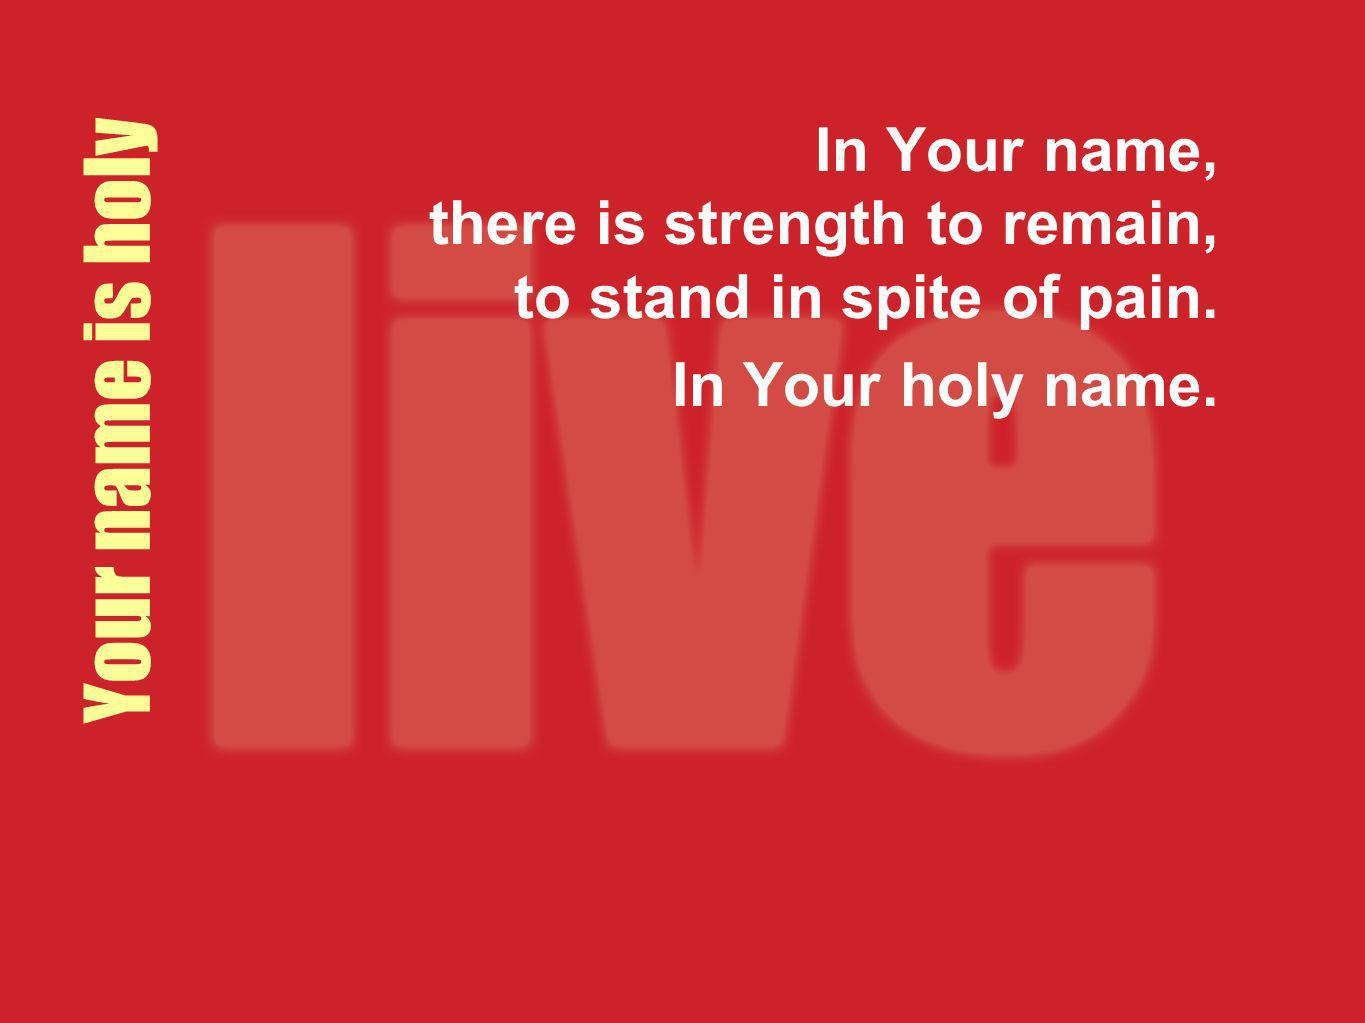 Your name is holy In Your name, there is strength to remain, to stand in spite of pain. In Your holy name.